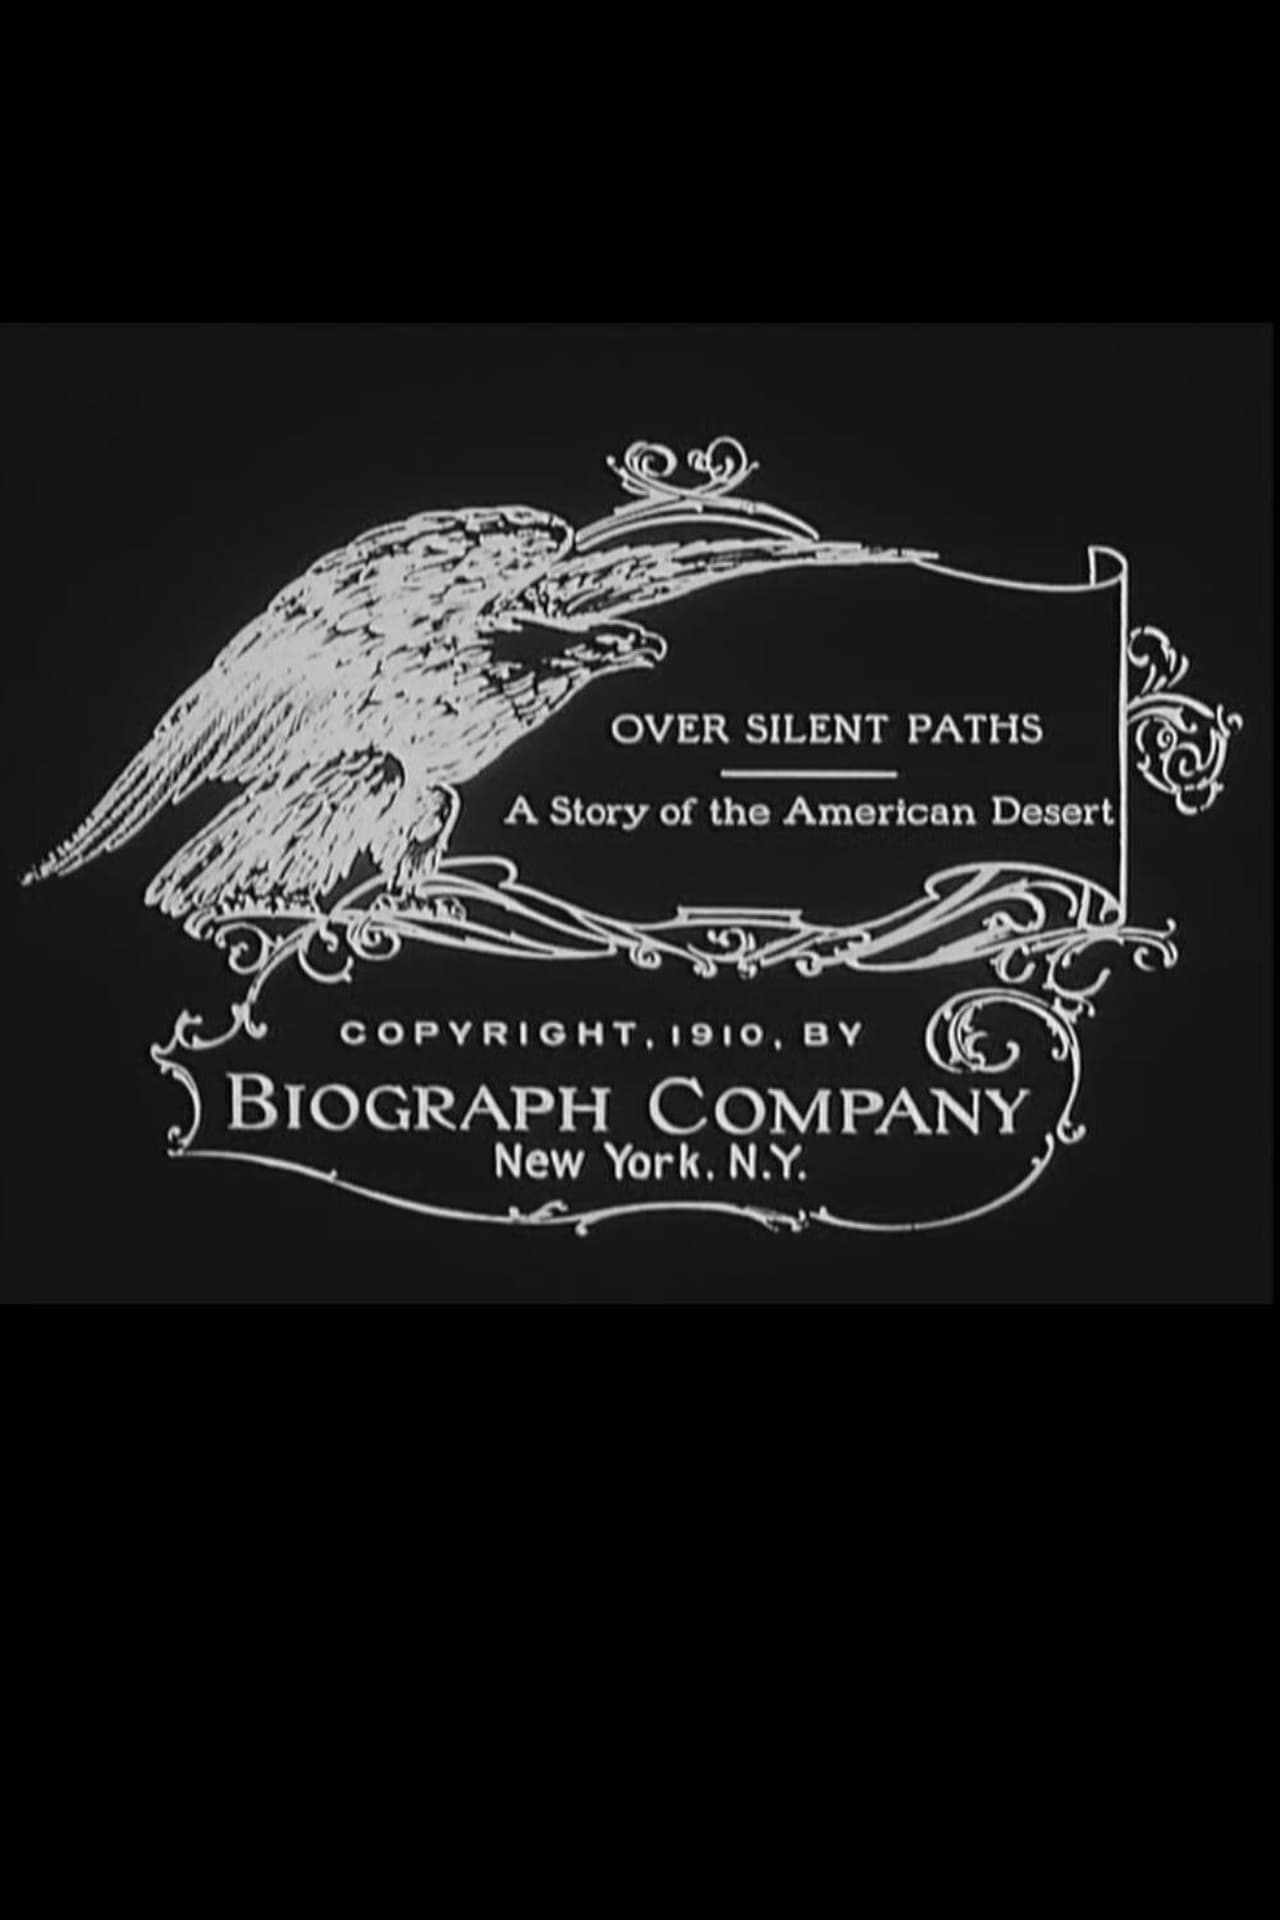 Over Silent Paths